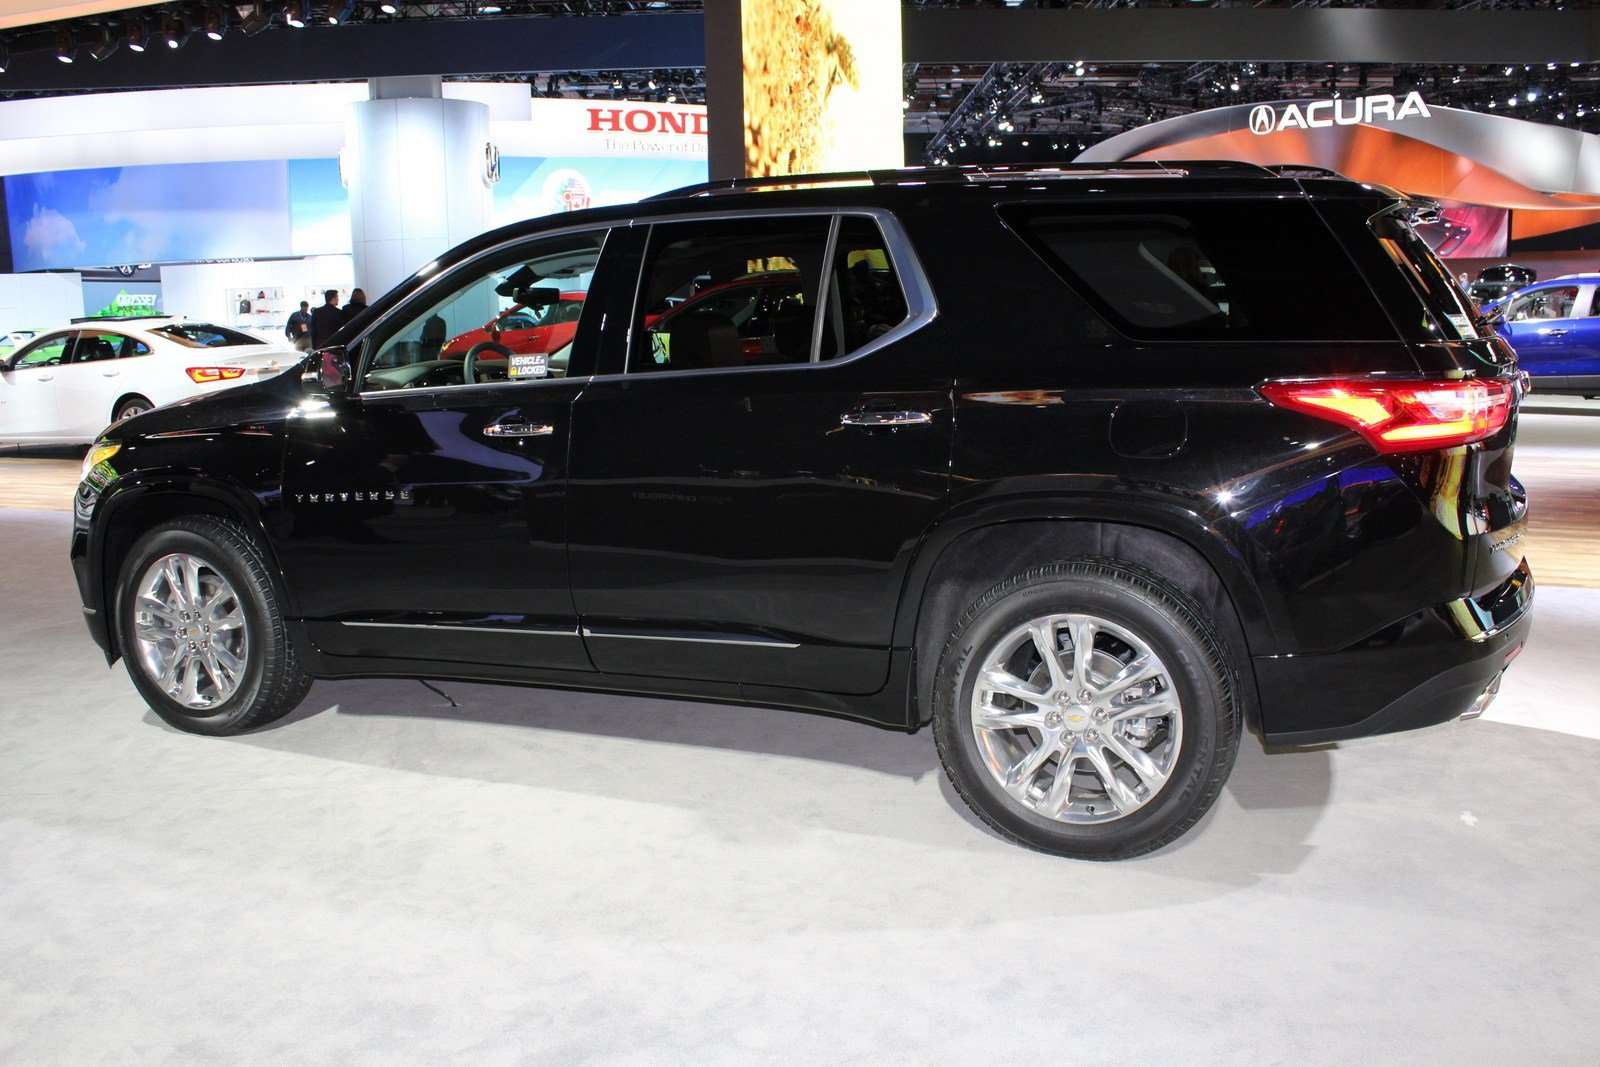 2018 chevrolet traverse picture 701351 car review top speed. Black Bedroom Furniture Sets. Home Design Ideas